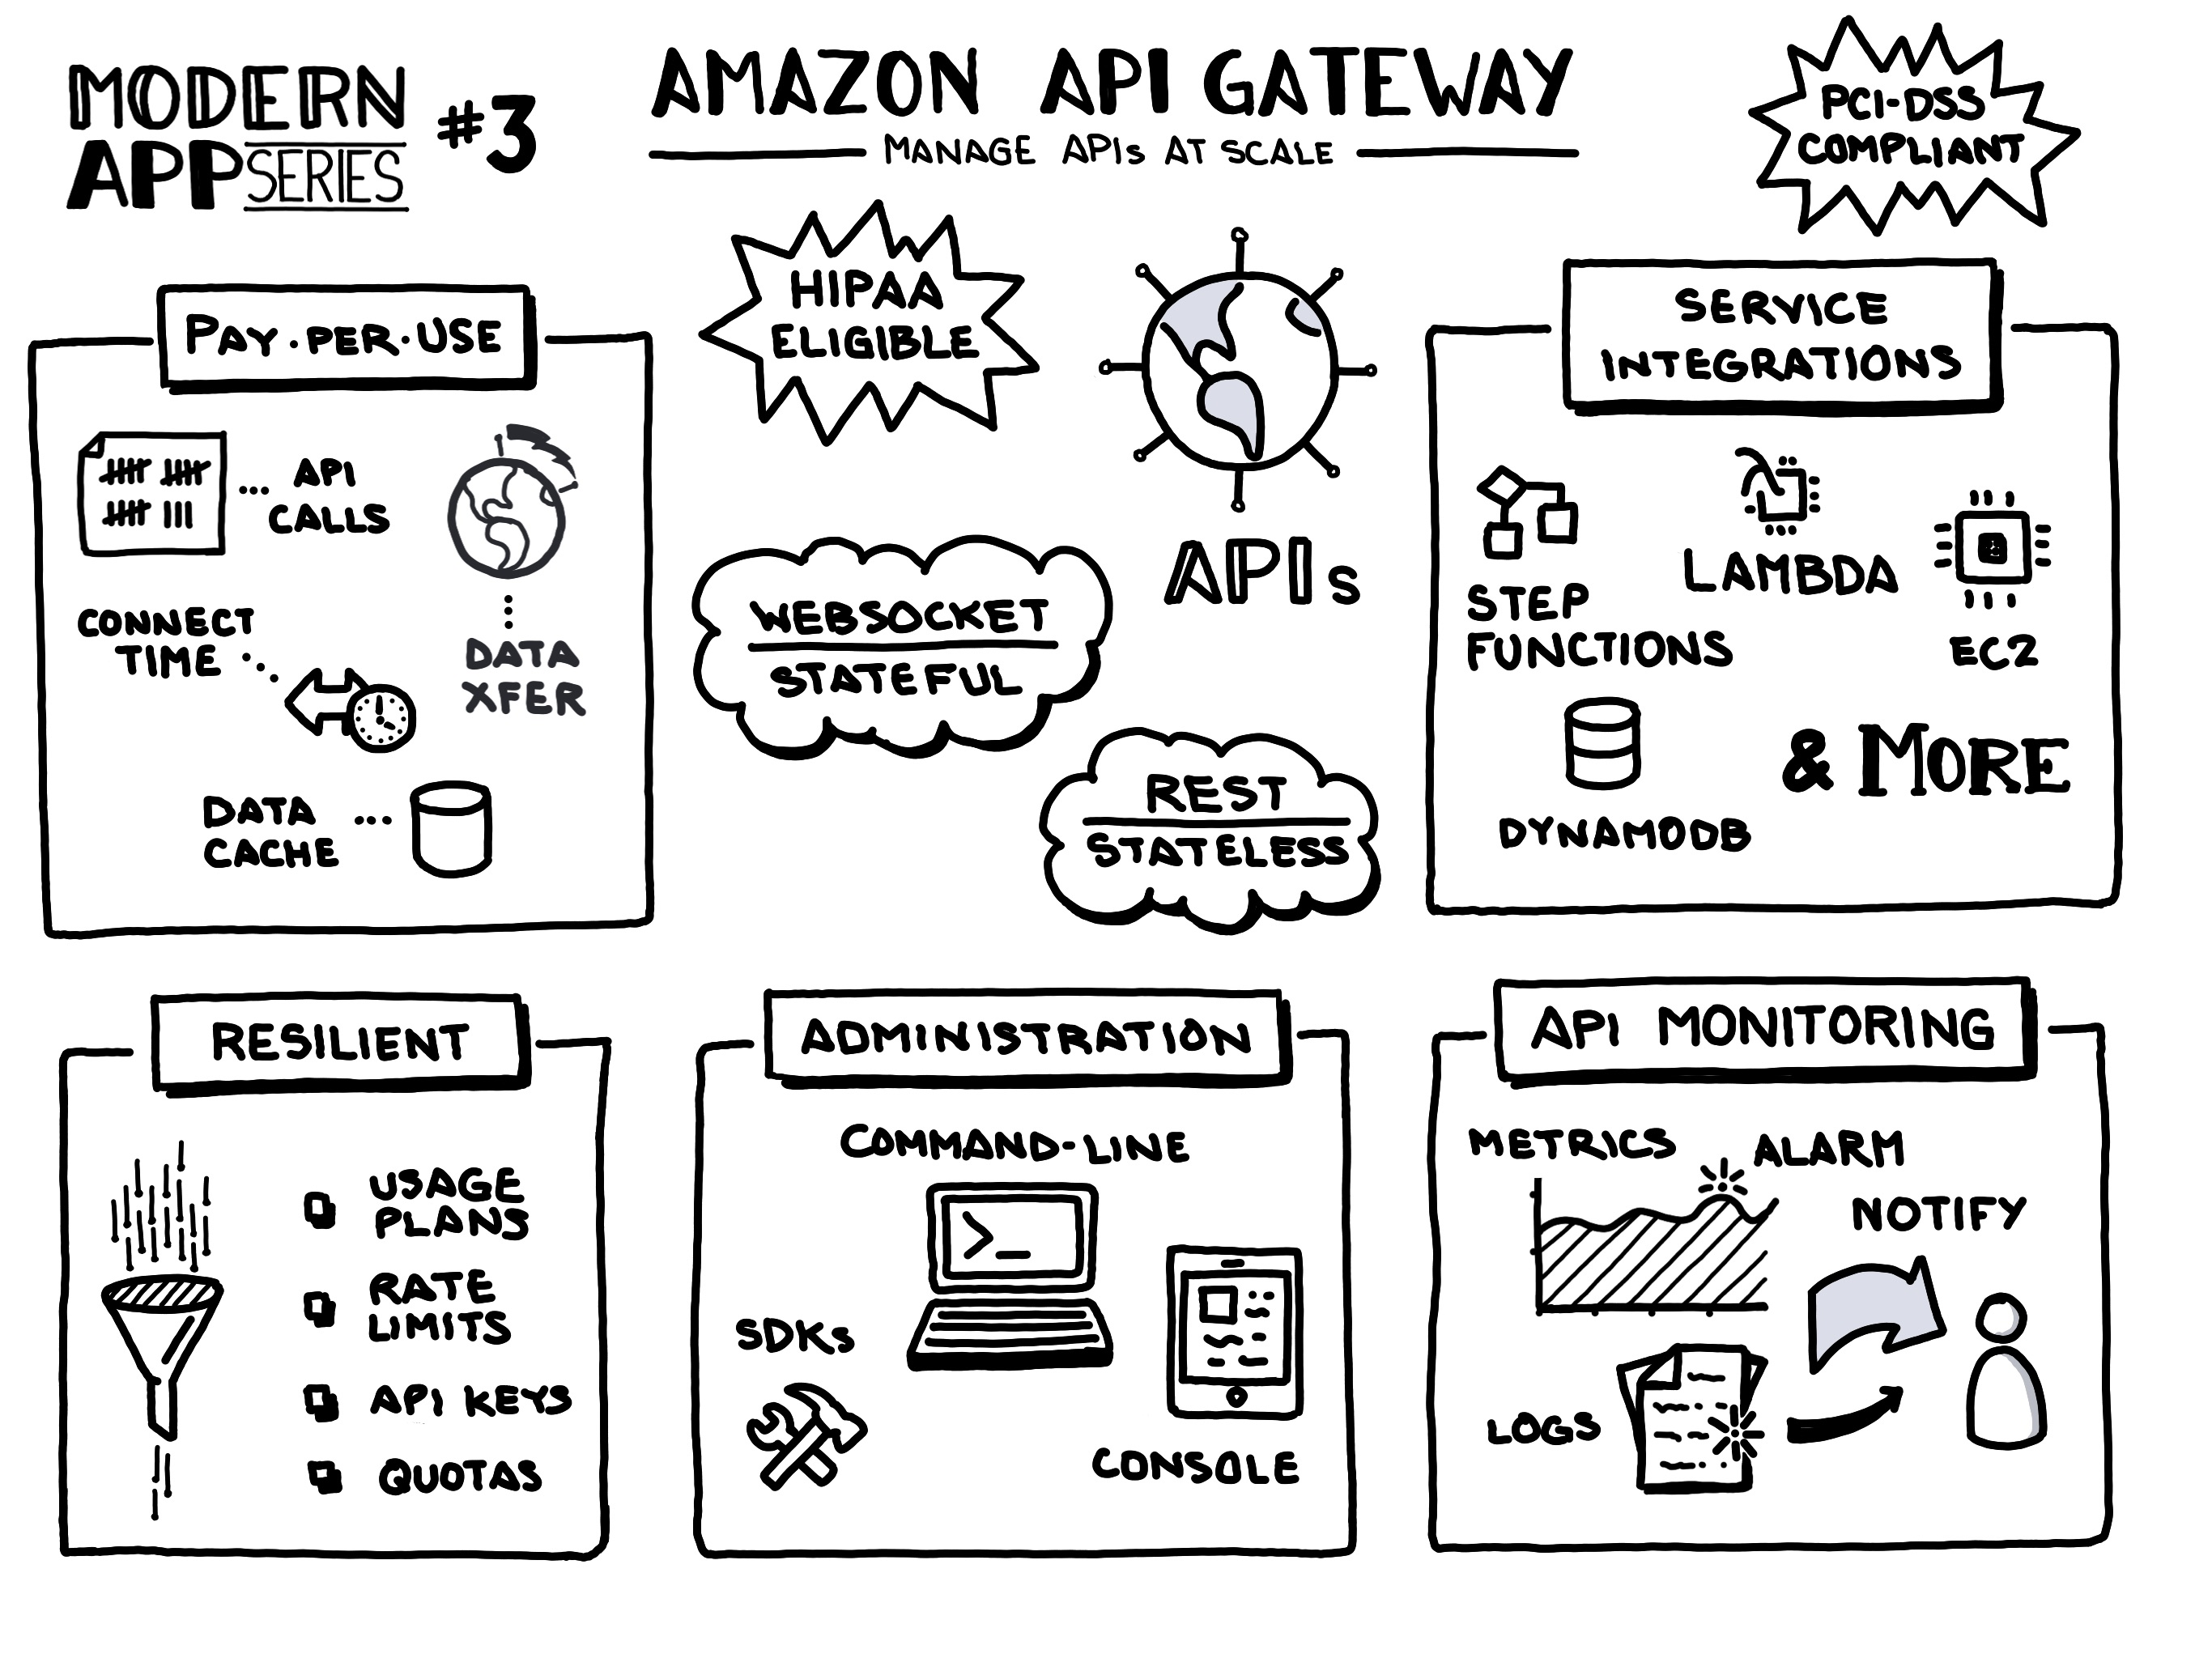 Amazon-API-Gateway.jpg